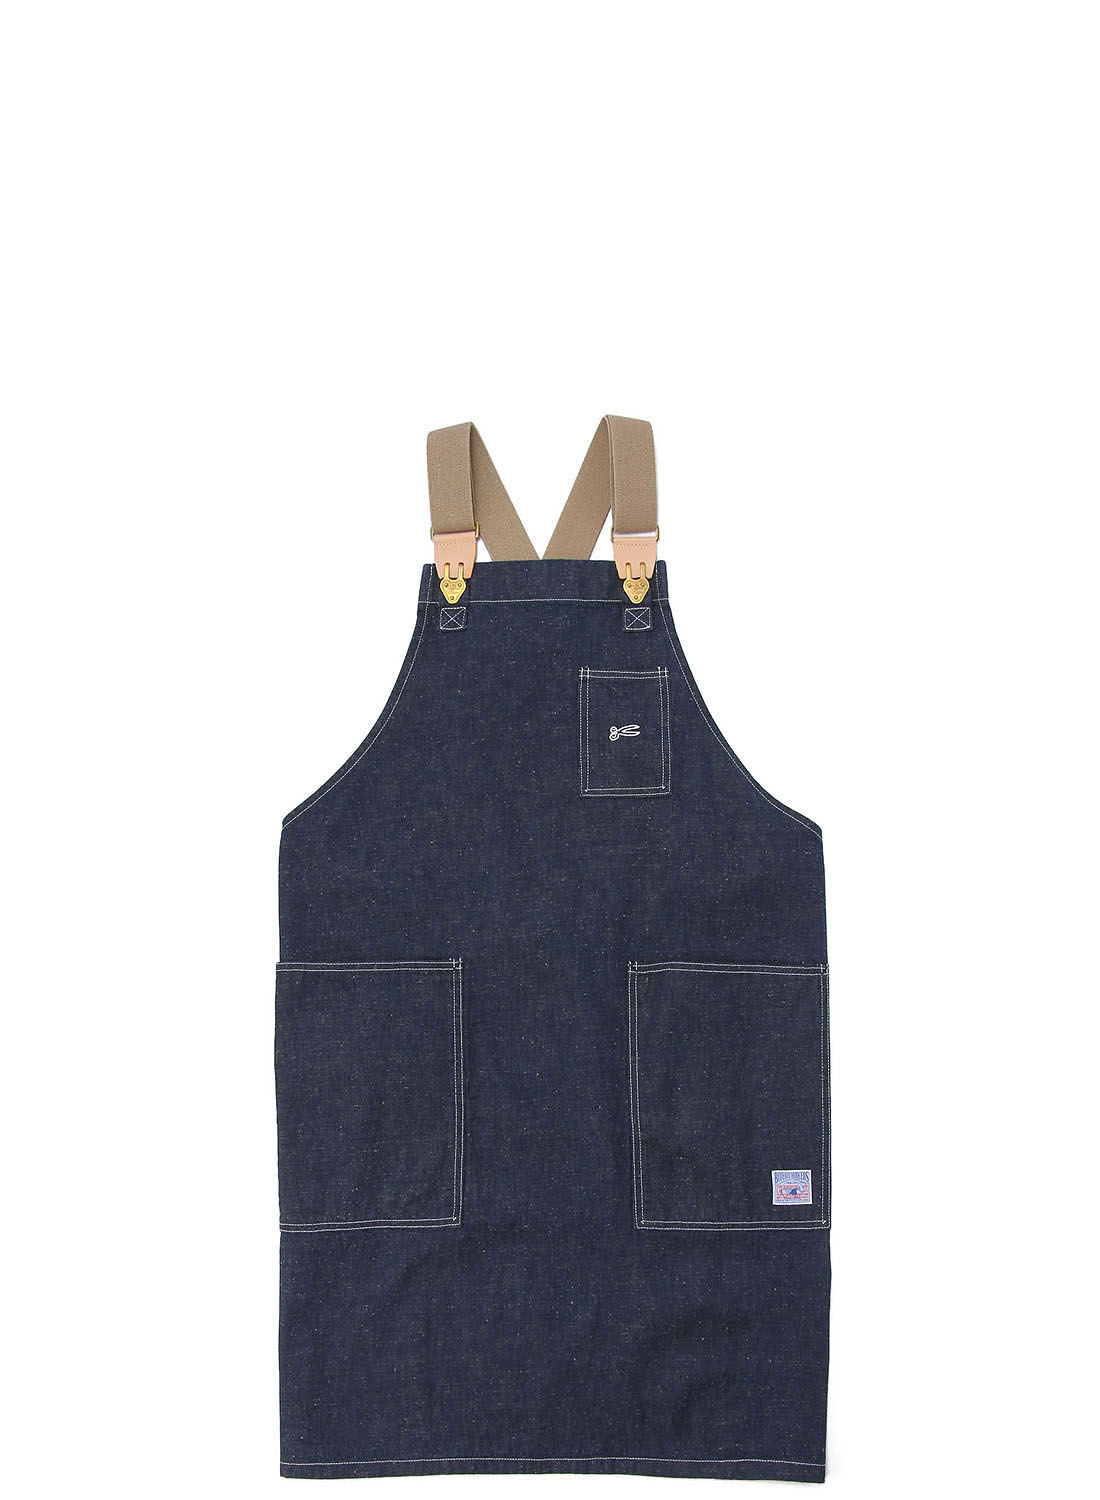 EXCLUSIVE 【DENHAM×THE SUPERIOR LABOR】 BBW WORK APRON